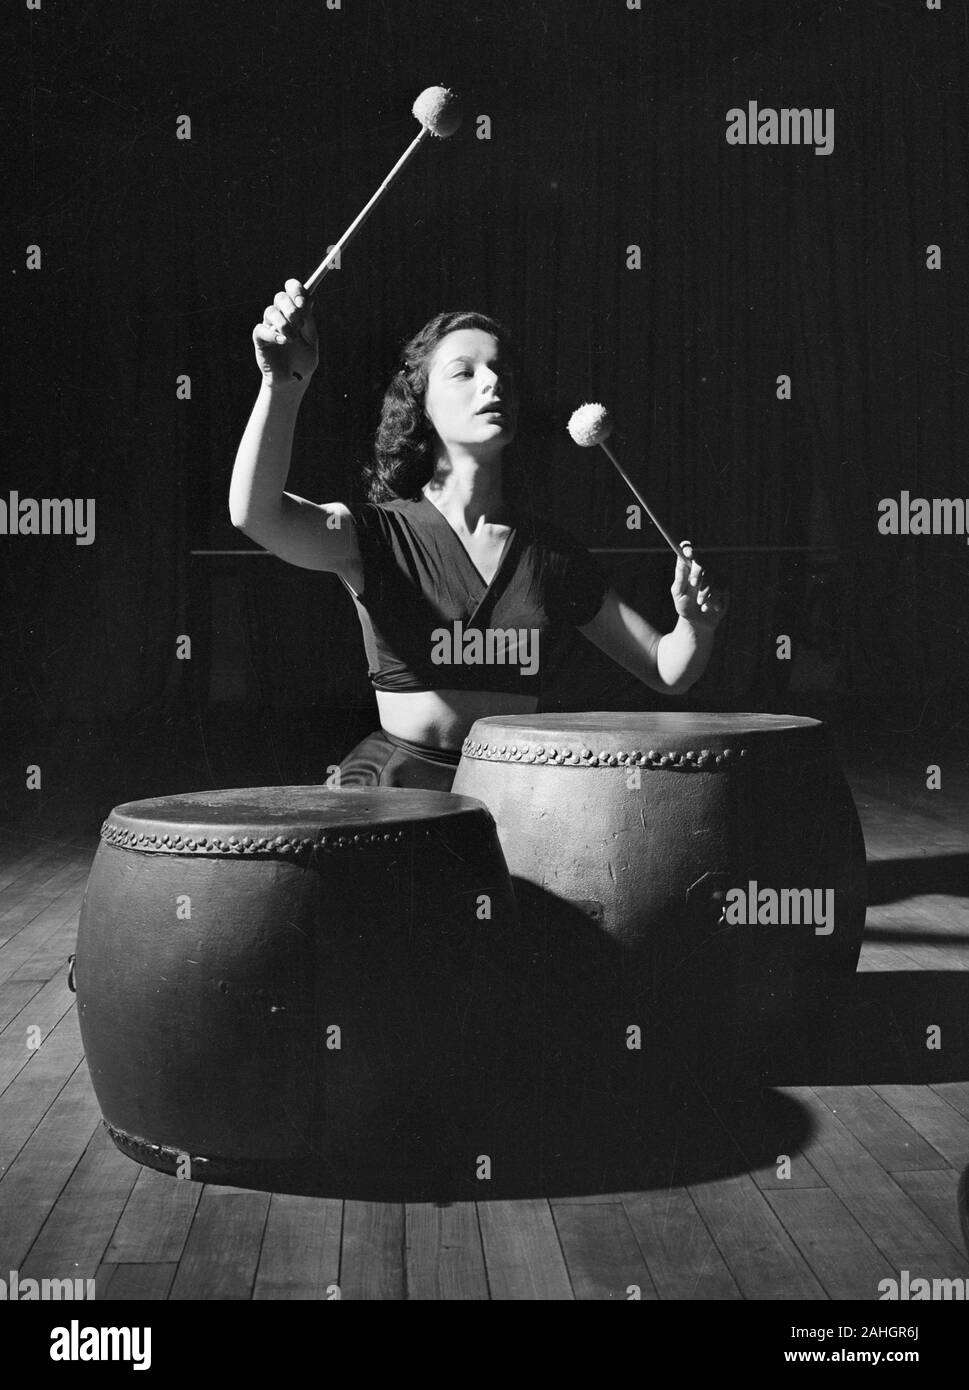 Woman banging drums 1946 Stock Photo